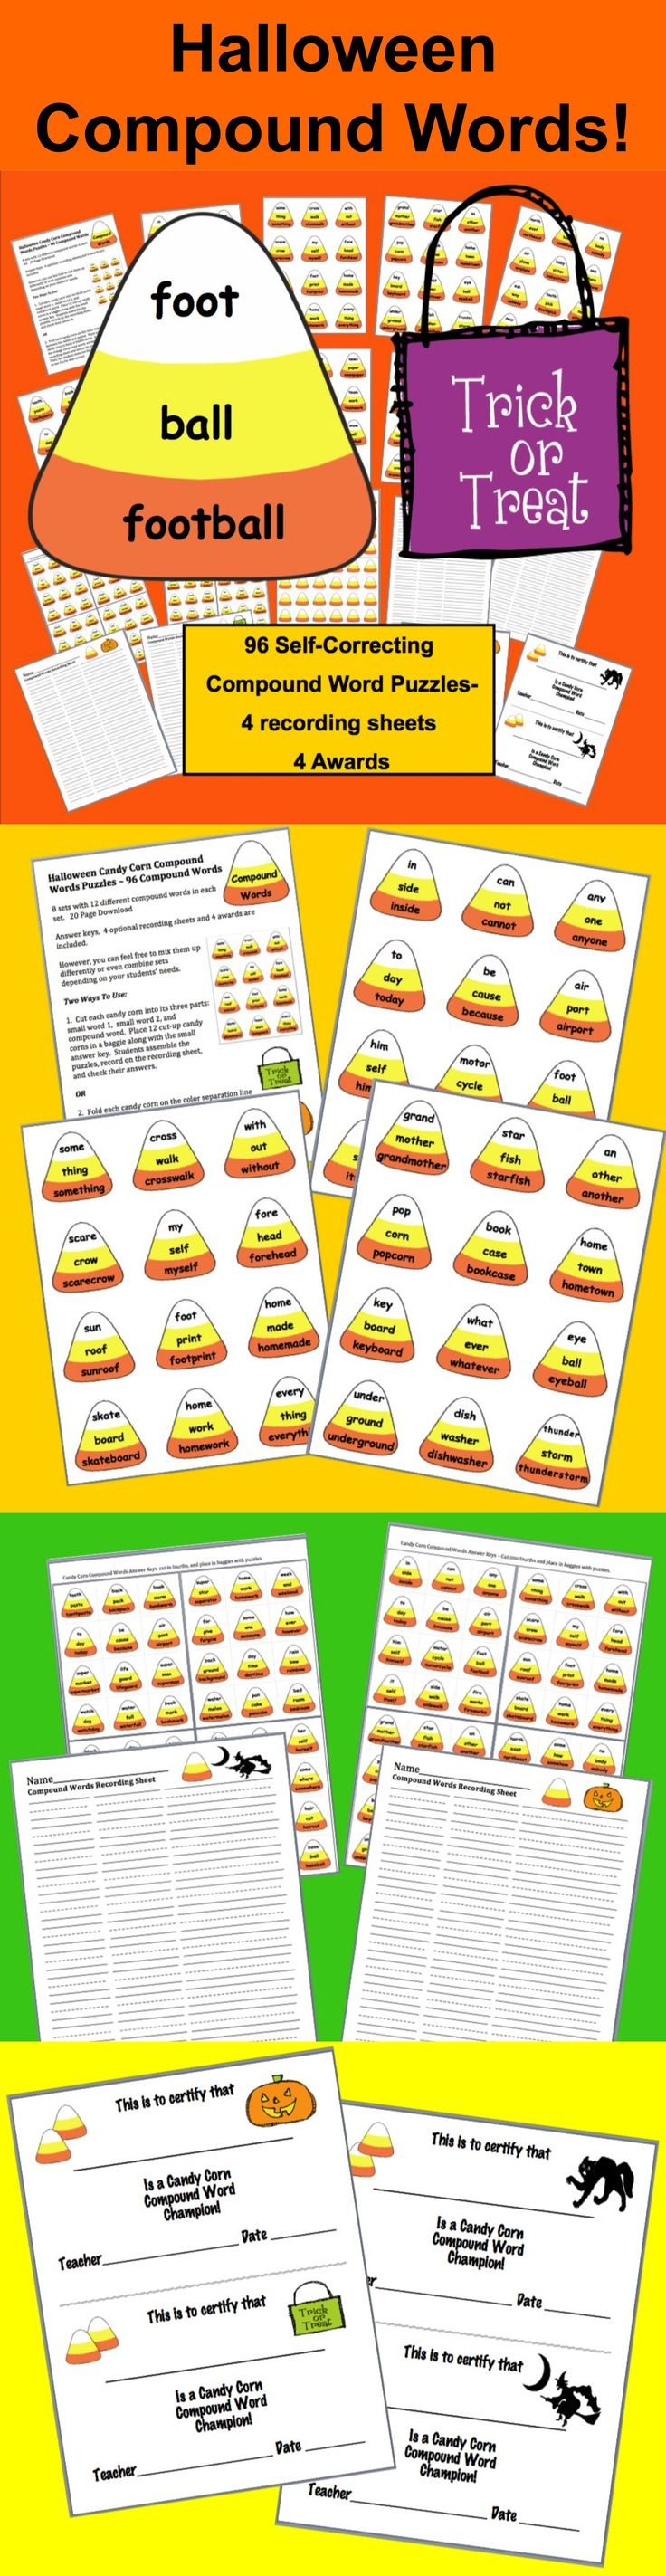 $3.00 Halloween Candy Corn Compound Words Puzzles – 96 Compound Words - Self Correcting! - 8 sets with 12 different compound words in each set.   20 Page Download - Answer keys,  4 optional recording sheets and 4 awards are included. 1 blank set of candy corn puzzles and answer cards in case you'd like to make some additional compound words you need.